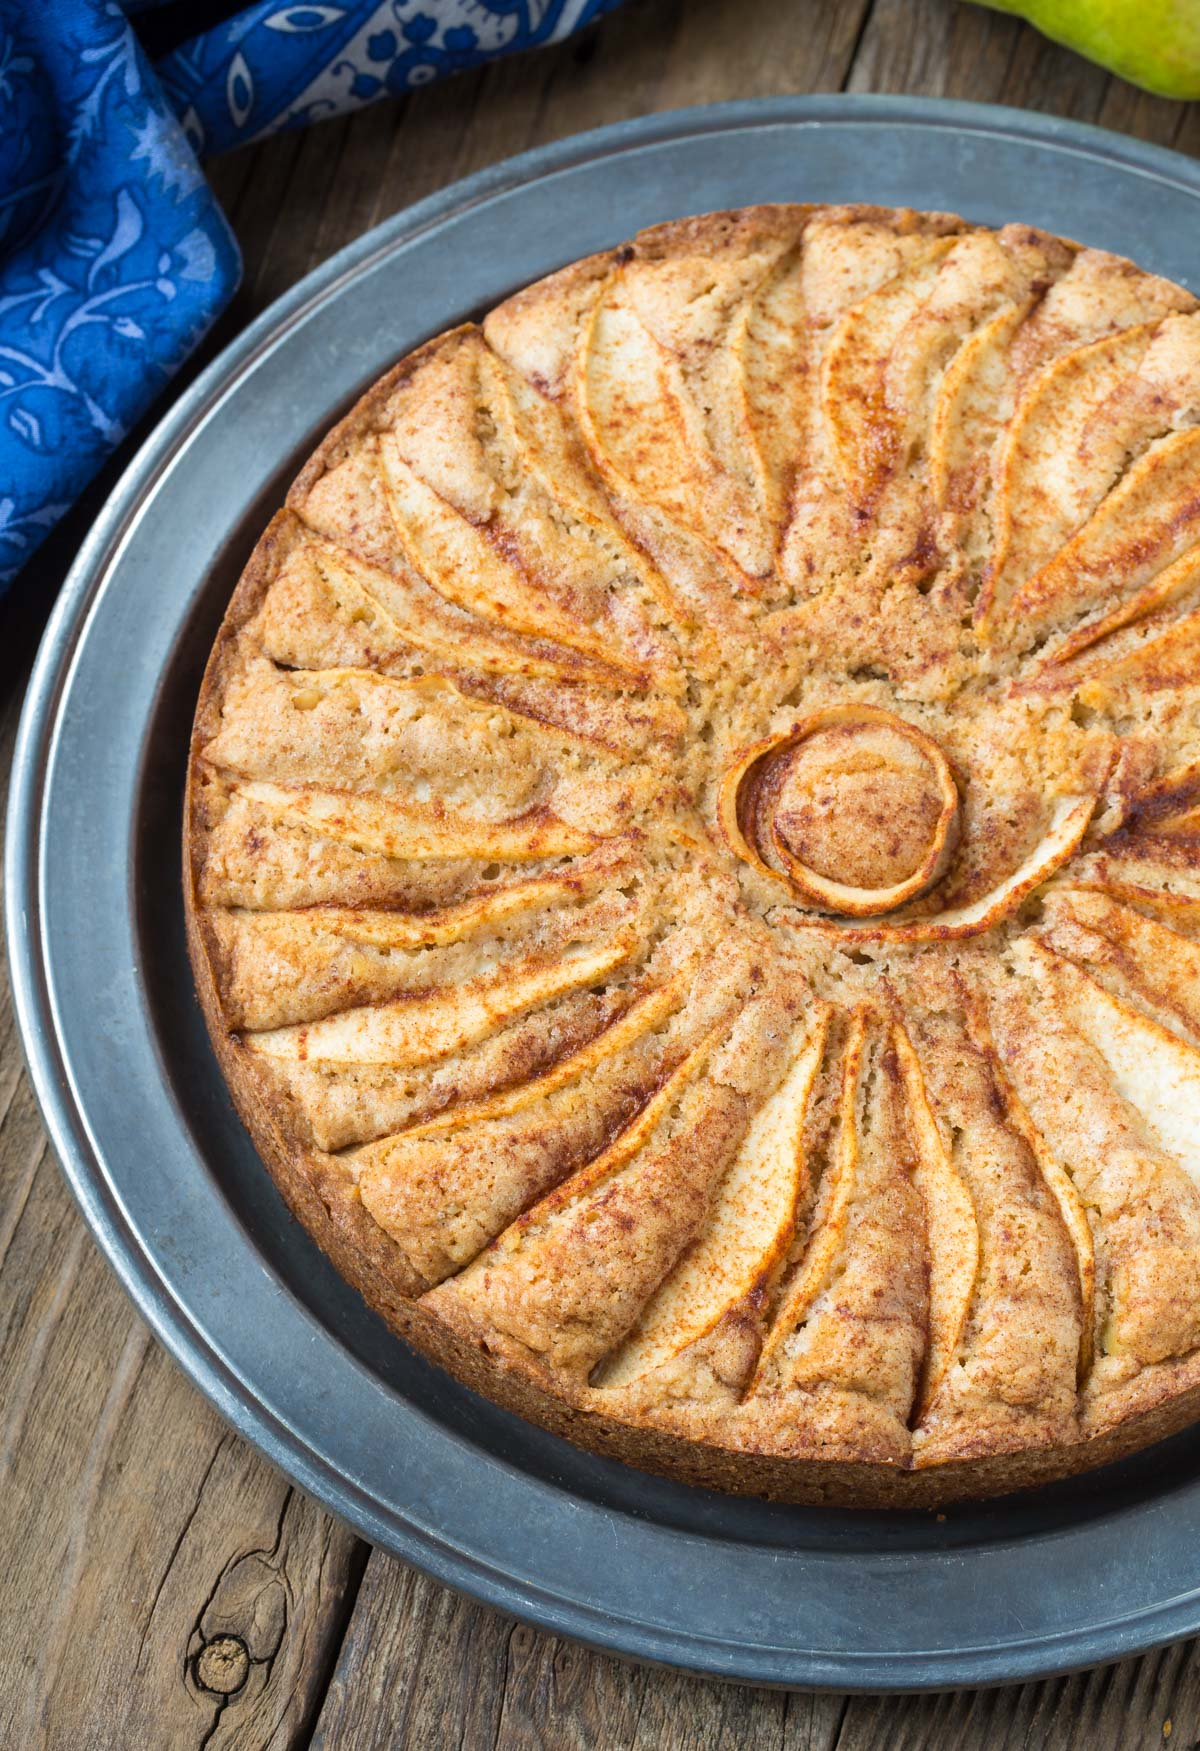 Spiced Walnut Pear Cake Recipe